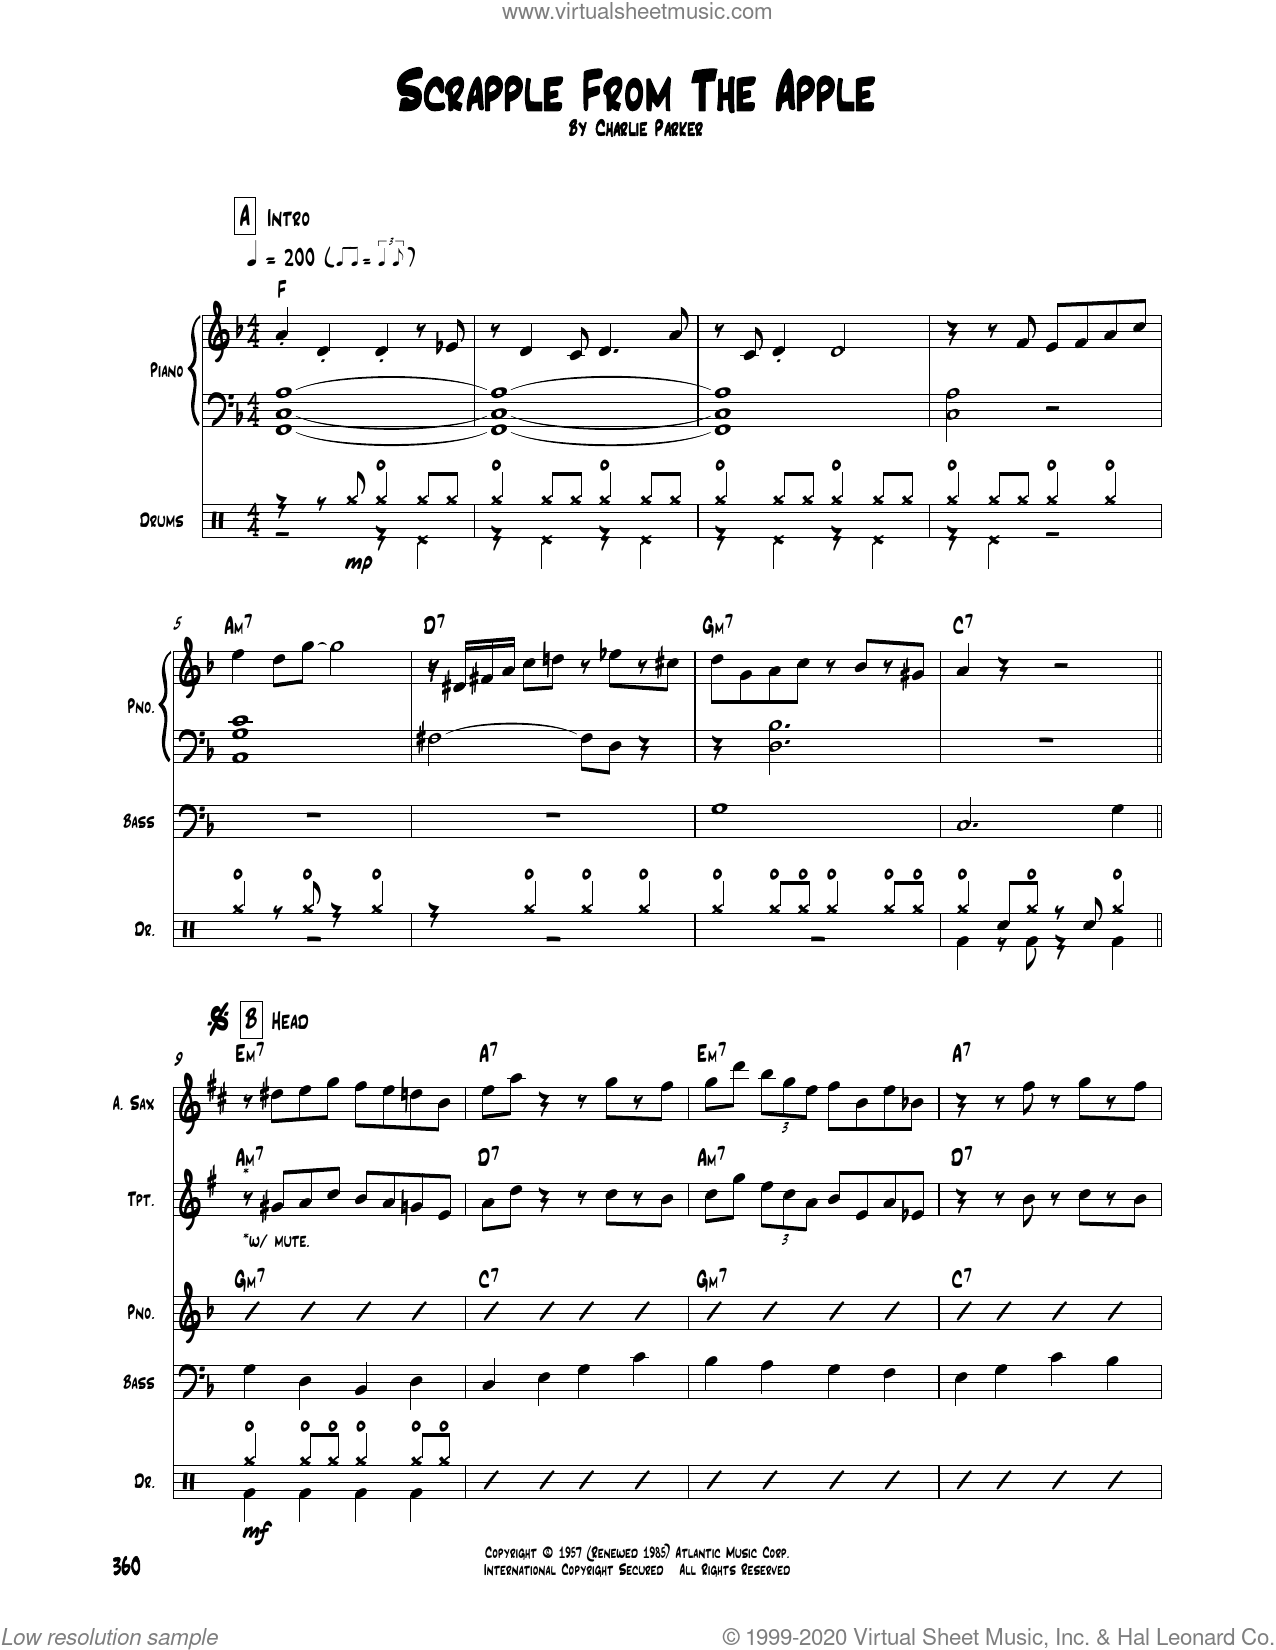 Scrapple From The Apple sheet music for chamber ensemble (Transcribed Score) by Charlie Parker, intermediate skill level